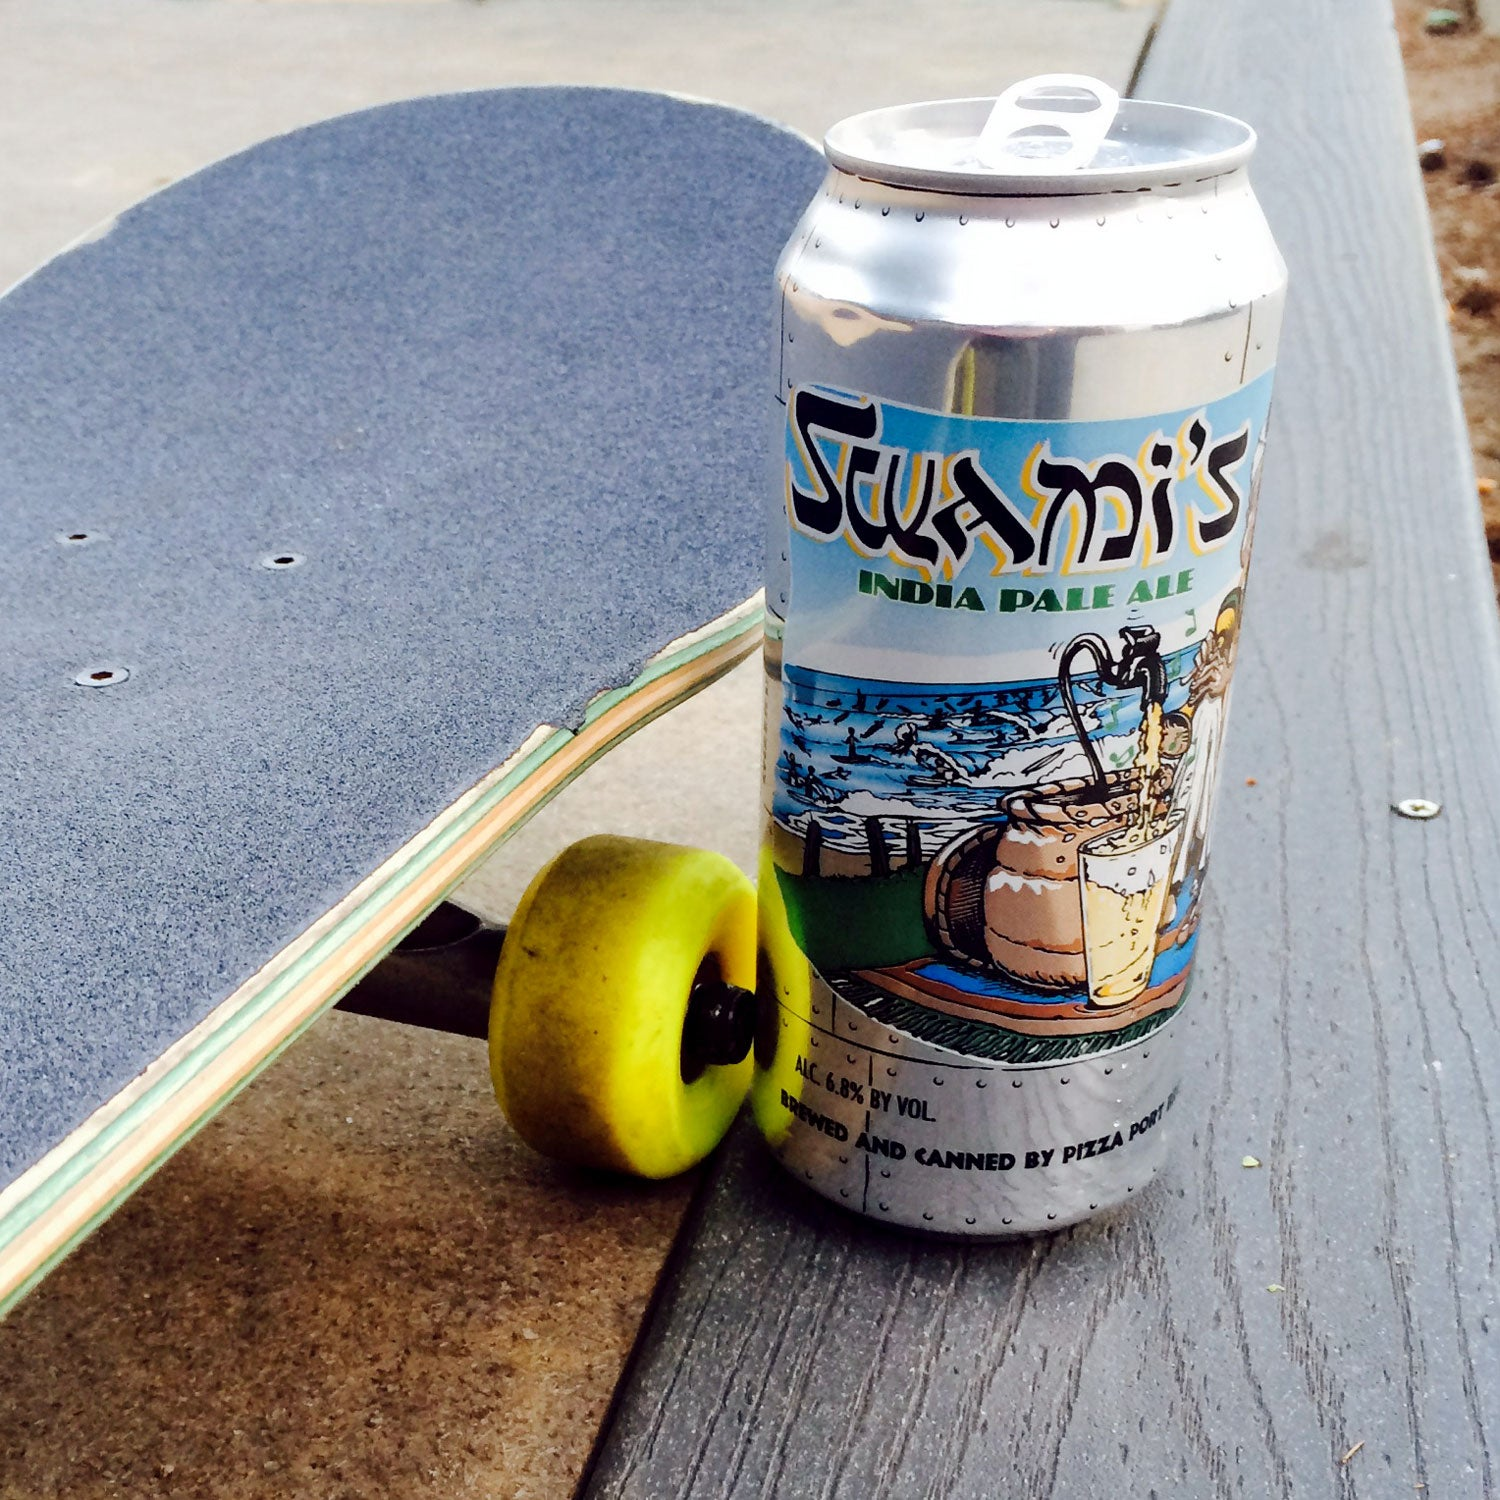 swamis ipa pizza port canned beer outside fall hiking or camping